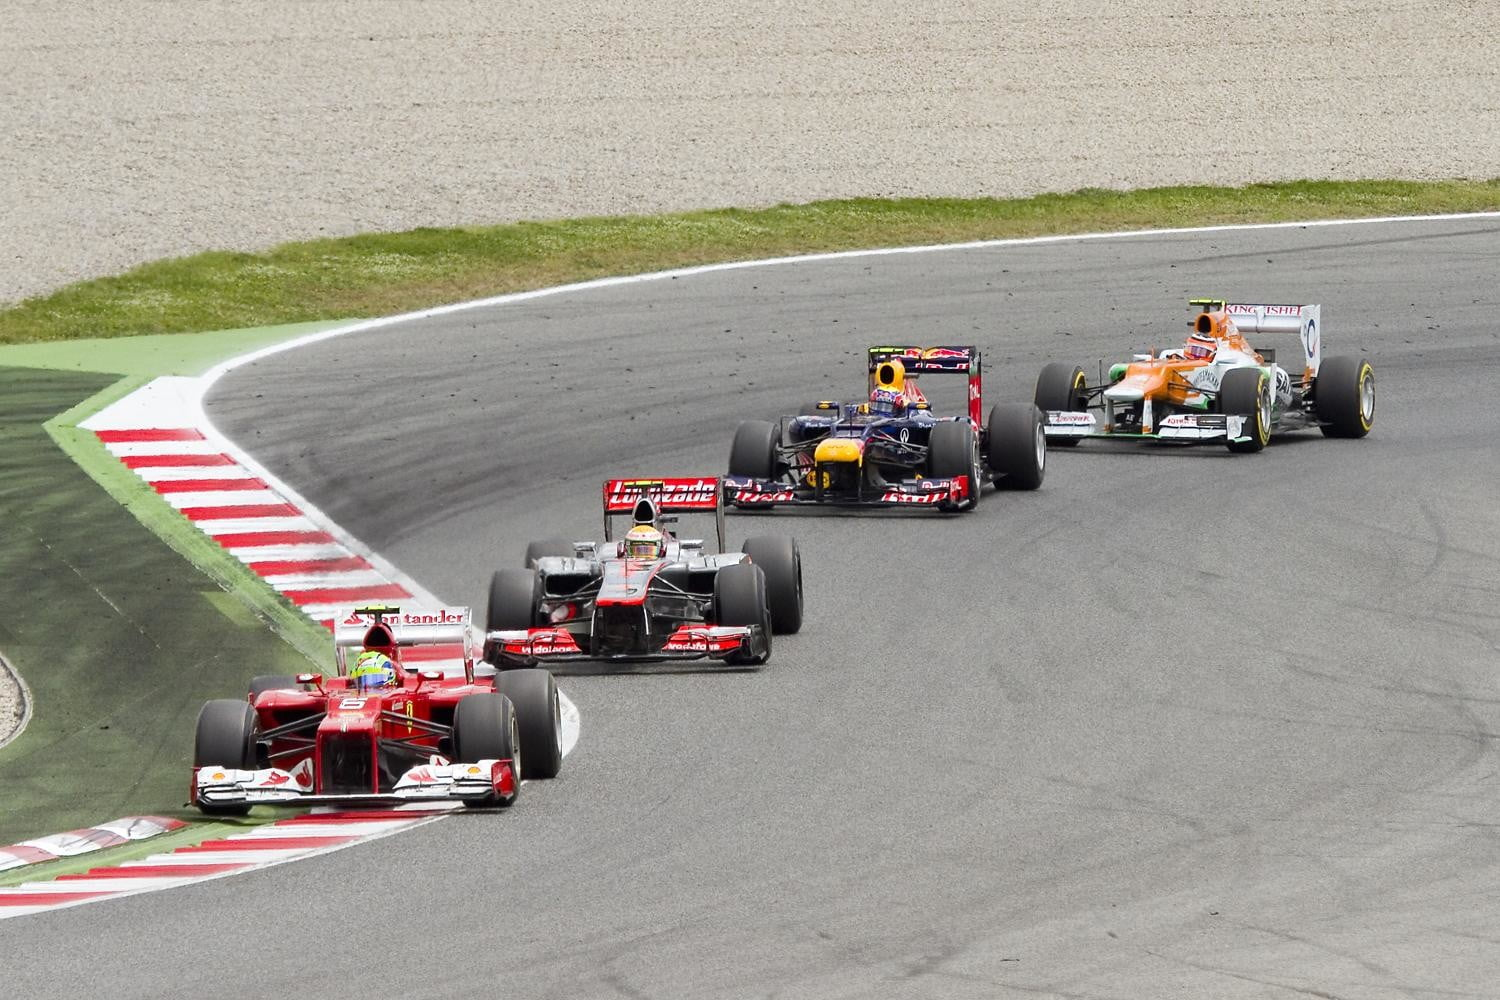 formula 1 live streaming online free youtube